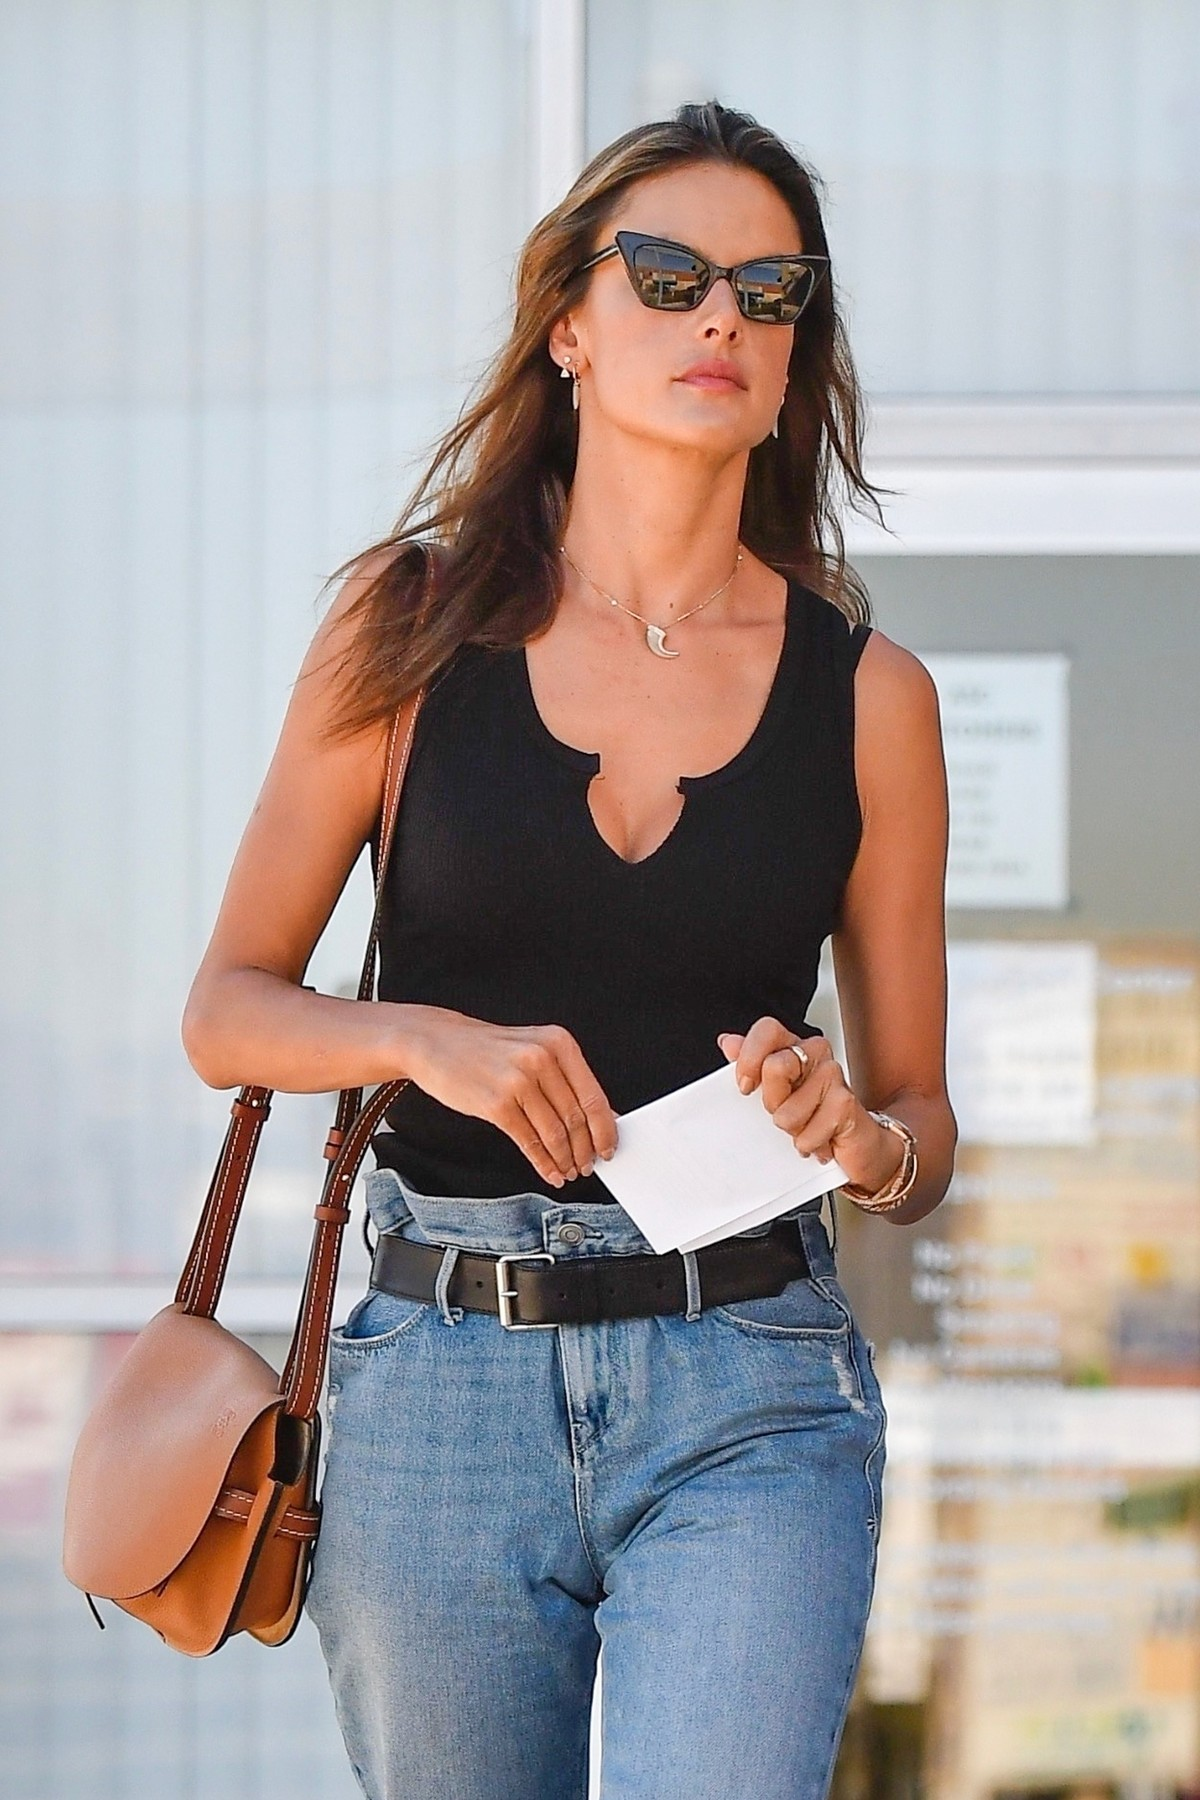 Alessandra Ambrosio in Black Top and Blue Jeans out in Los Angeles 2019/11/18 13